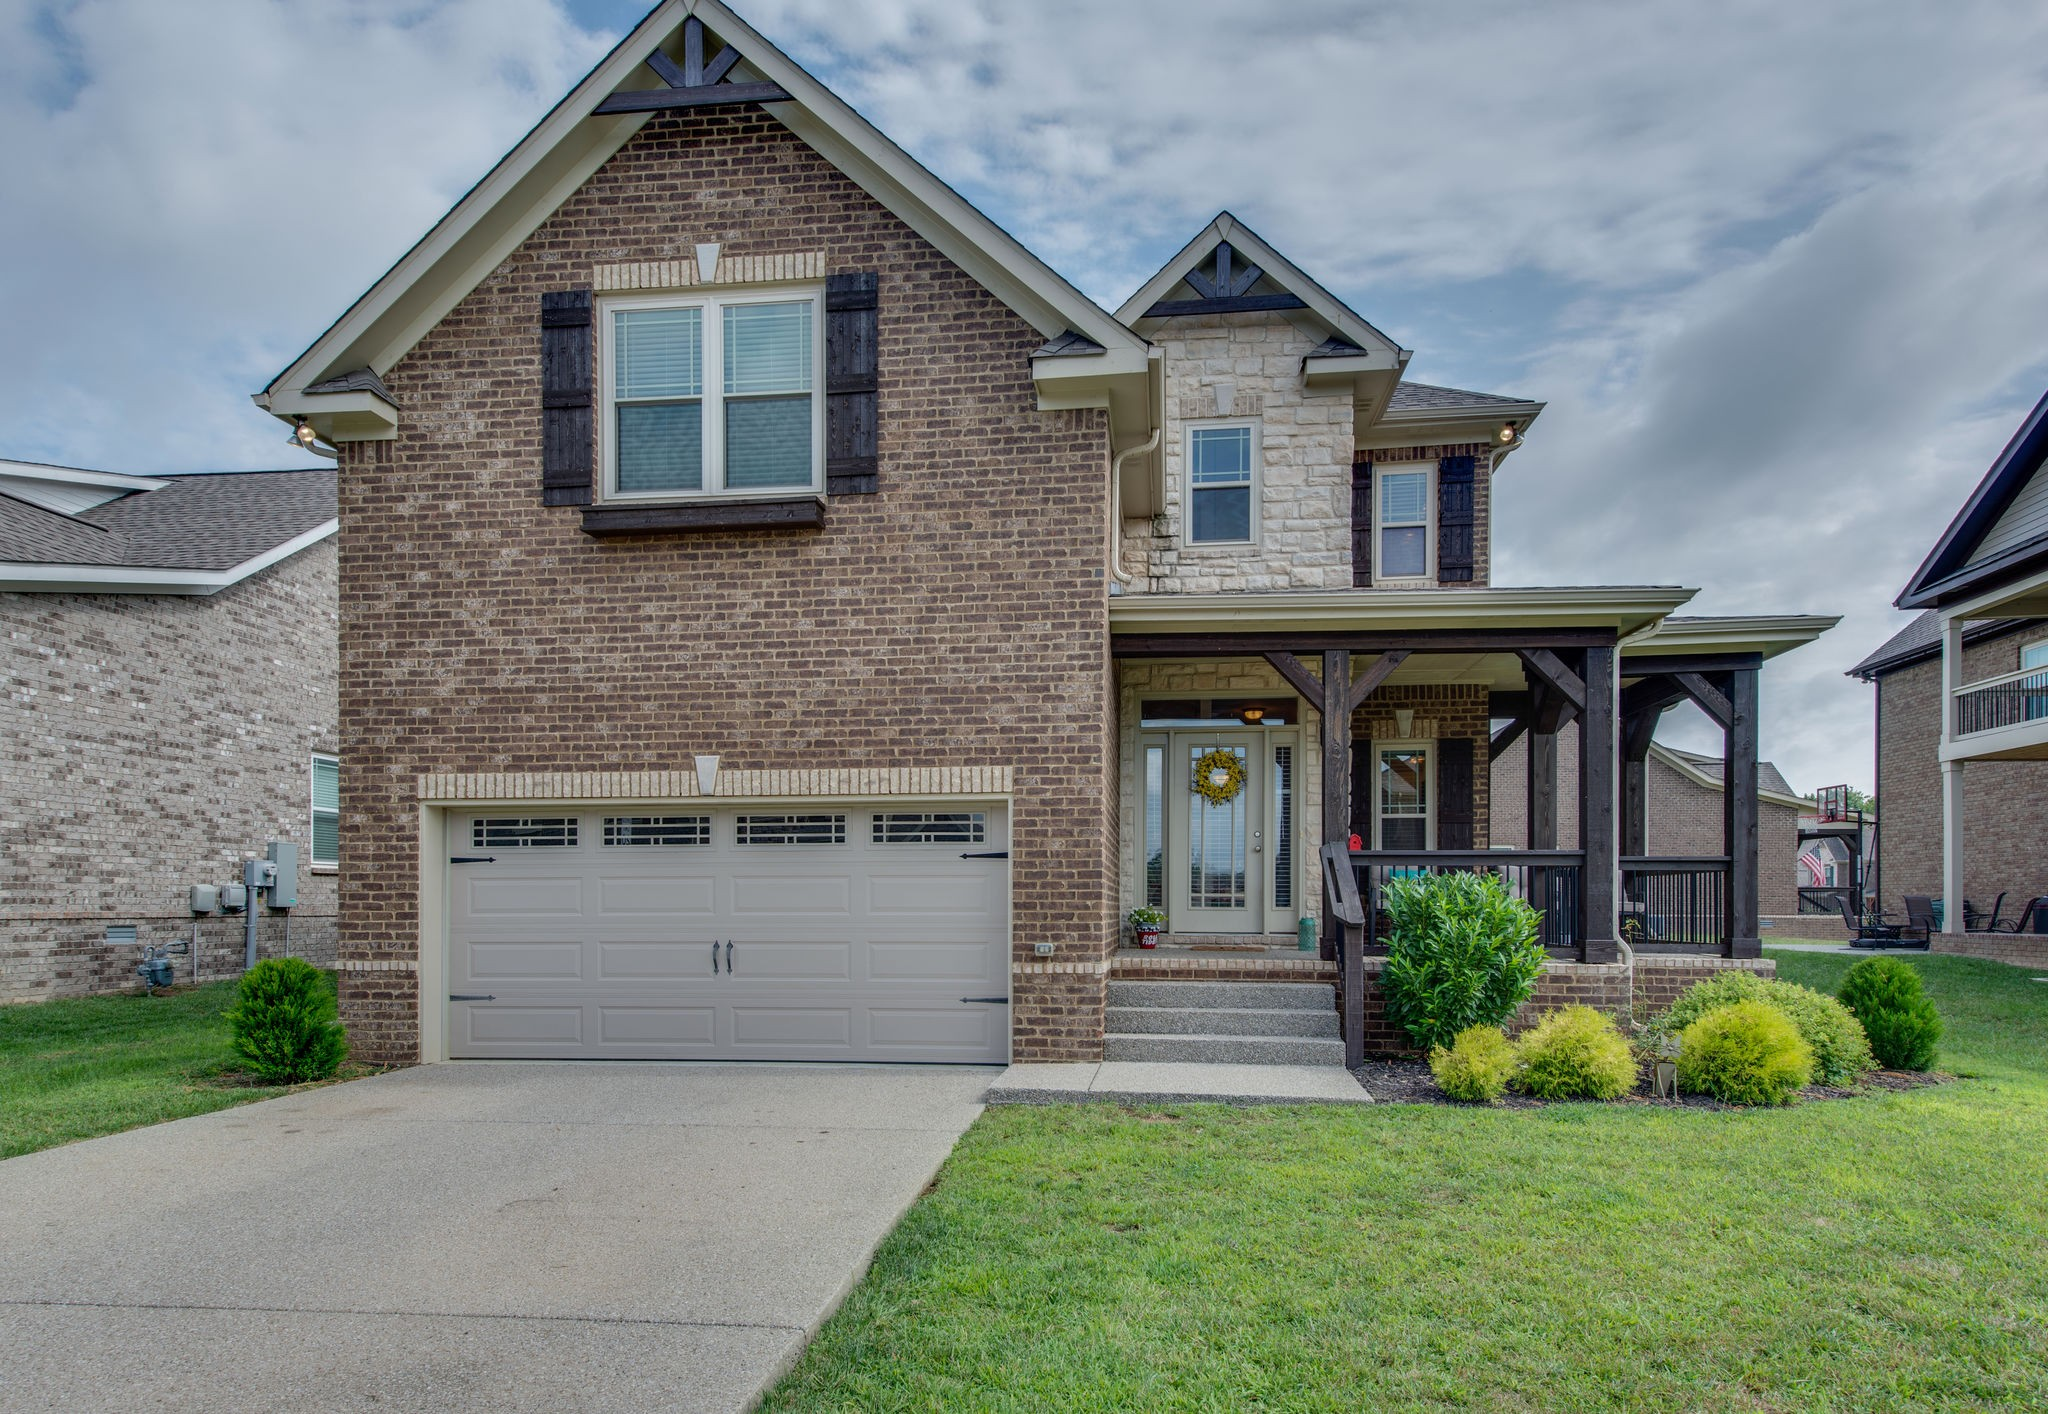 8029 Ragusa Cir, Spring Hill, TN 37174 - Spring Hill, TN real estate listing